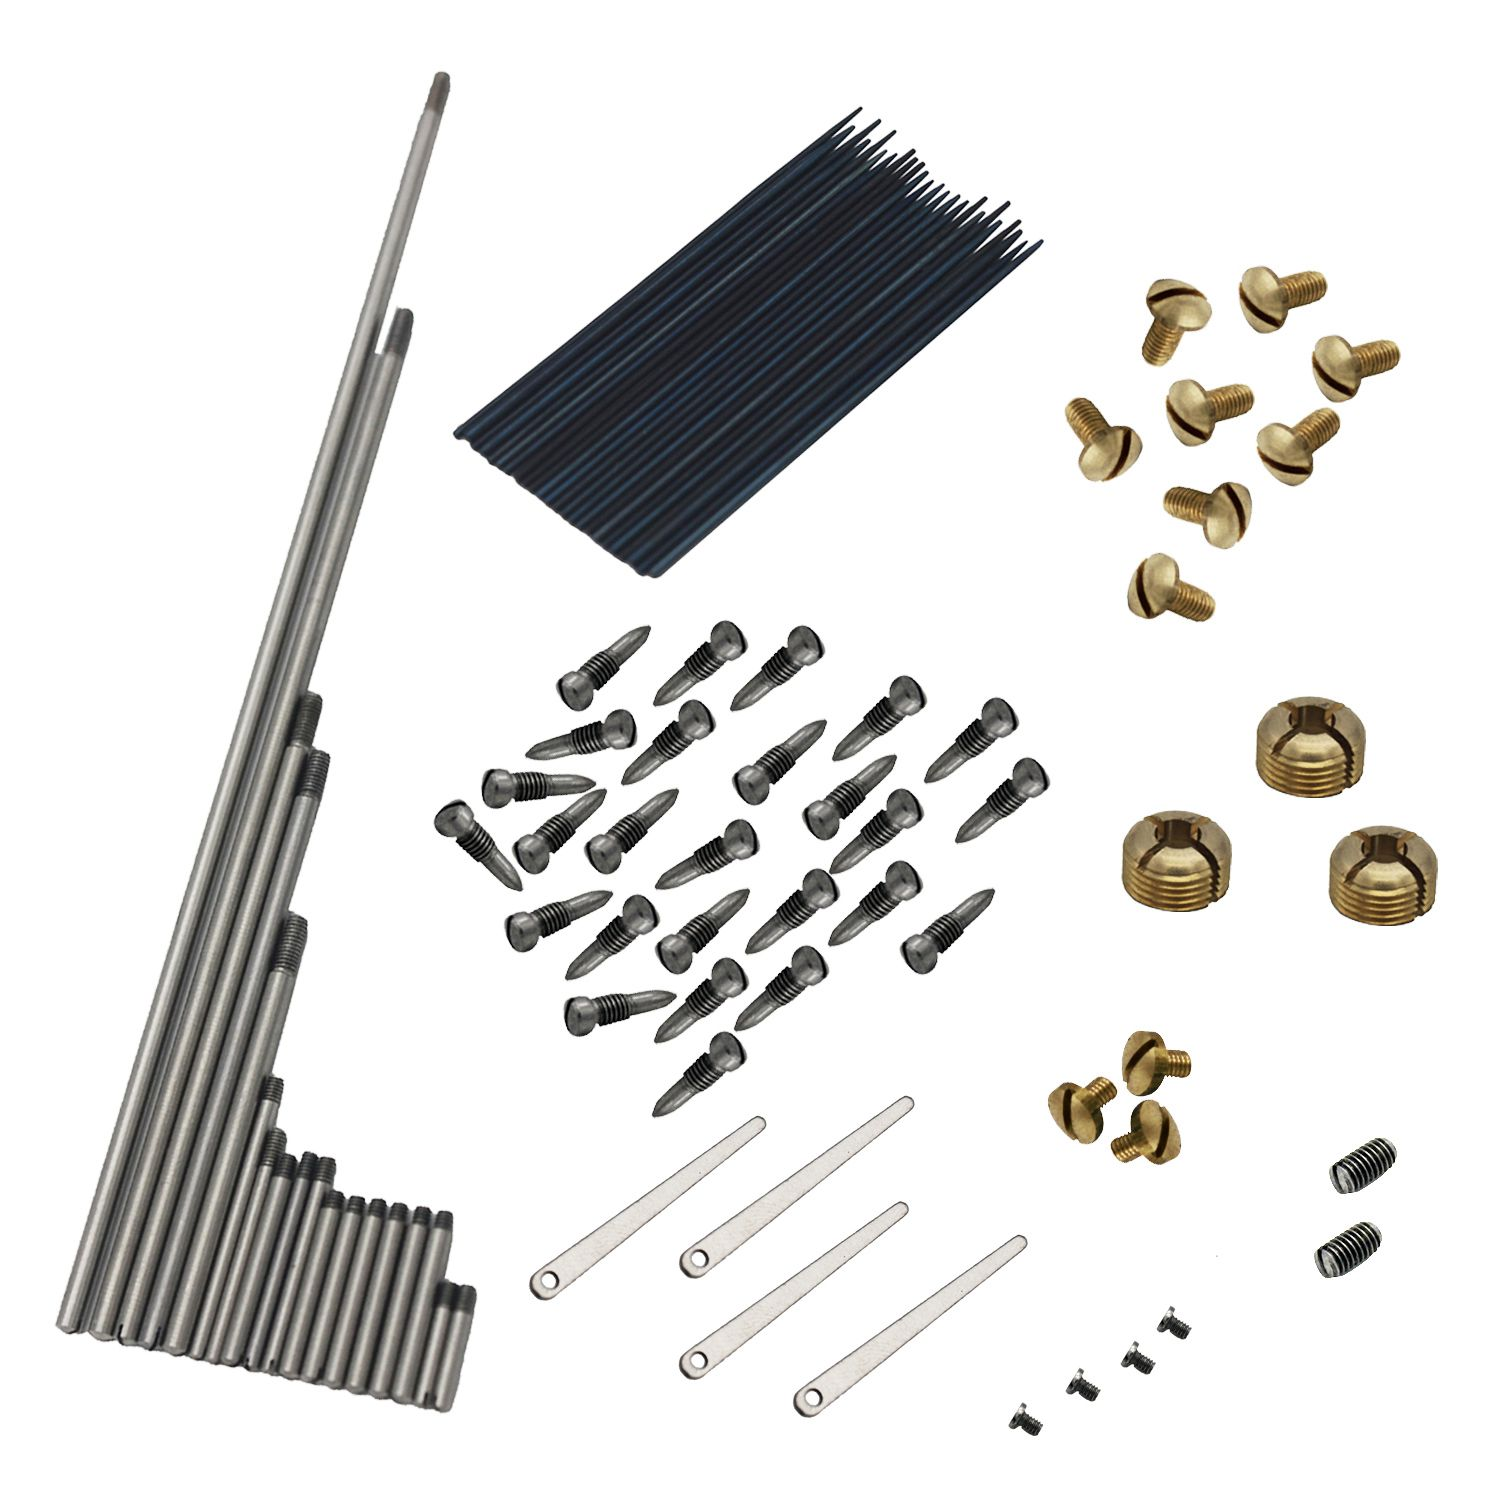 New 92pcs/set Alto Sax Saxophone Repair Parts Screws + Saxophone Springs Kit DIY Tool Woodwind Instrument Accessories